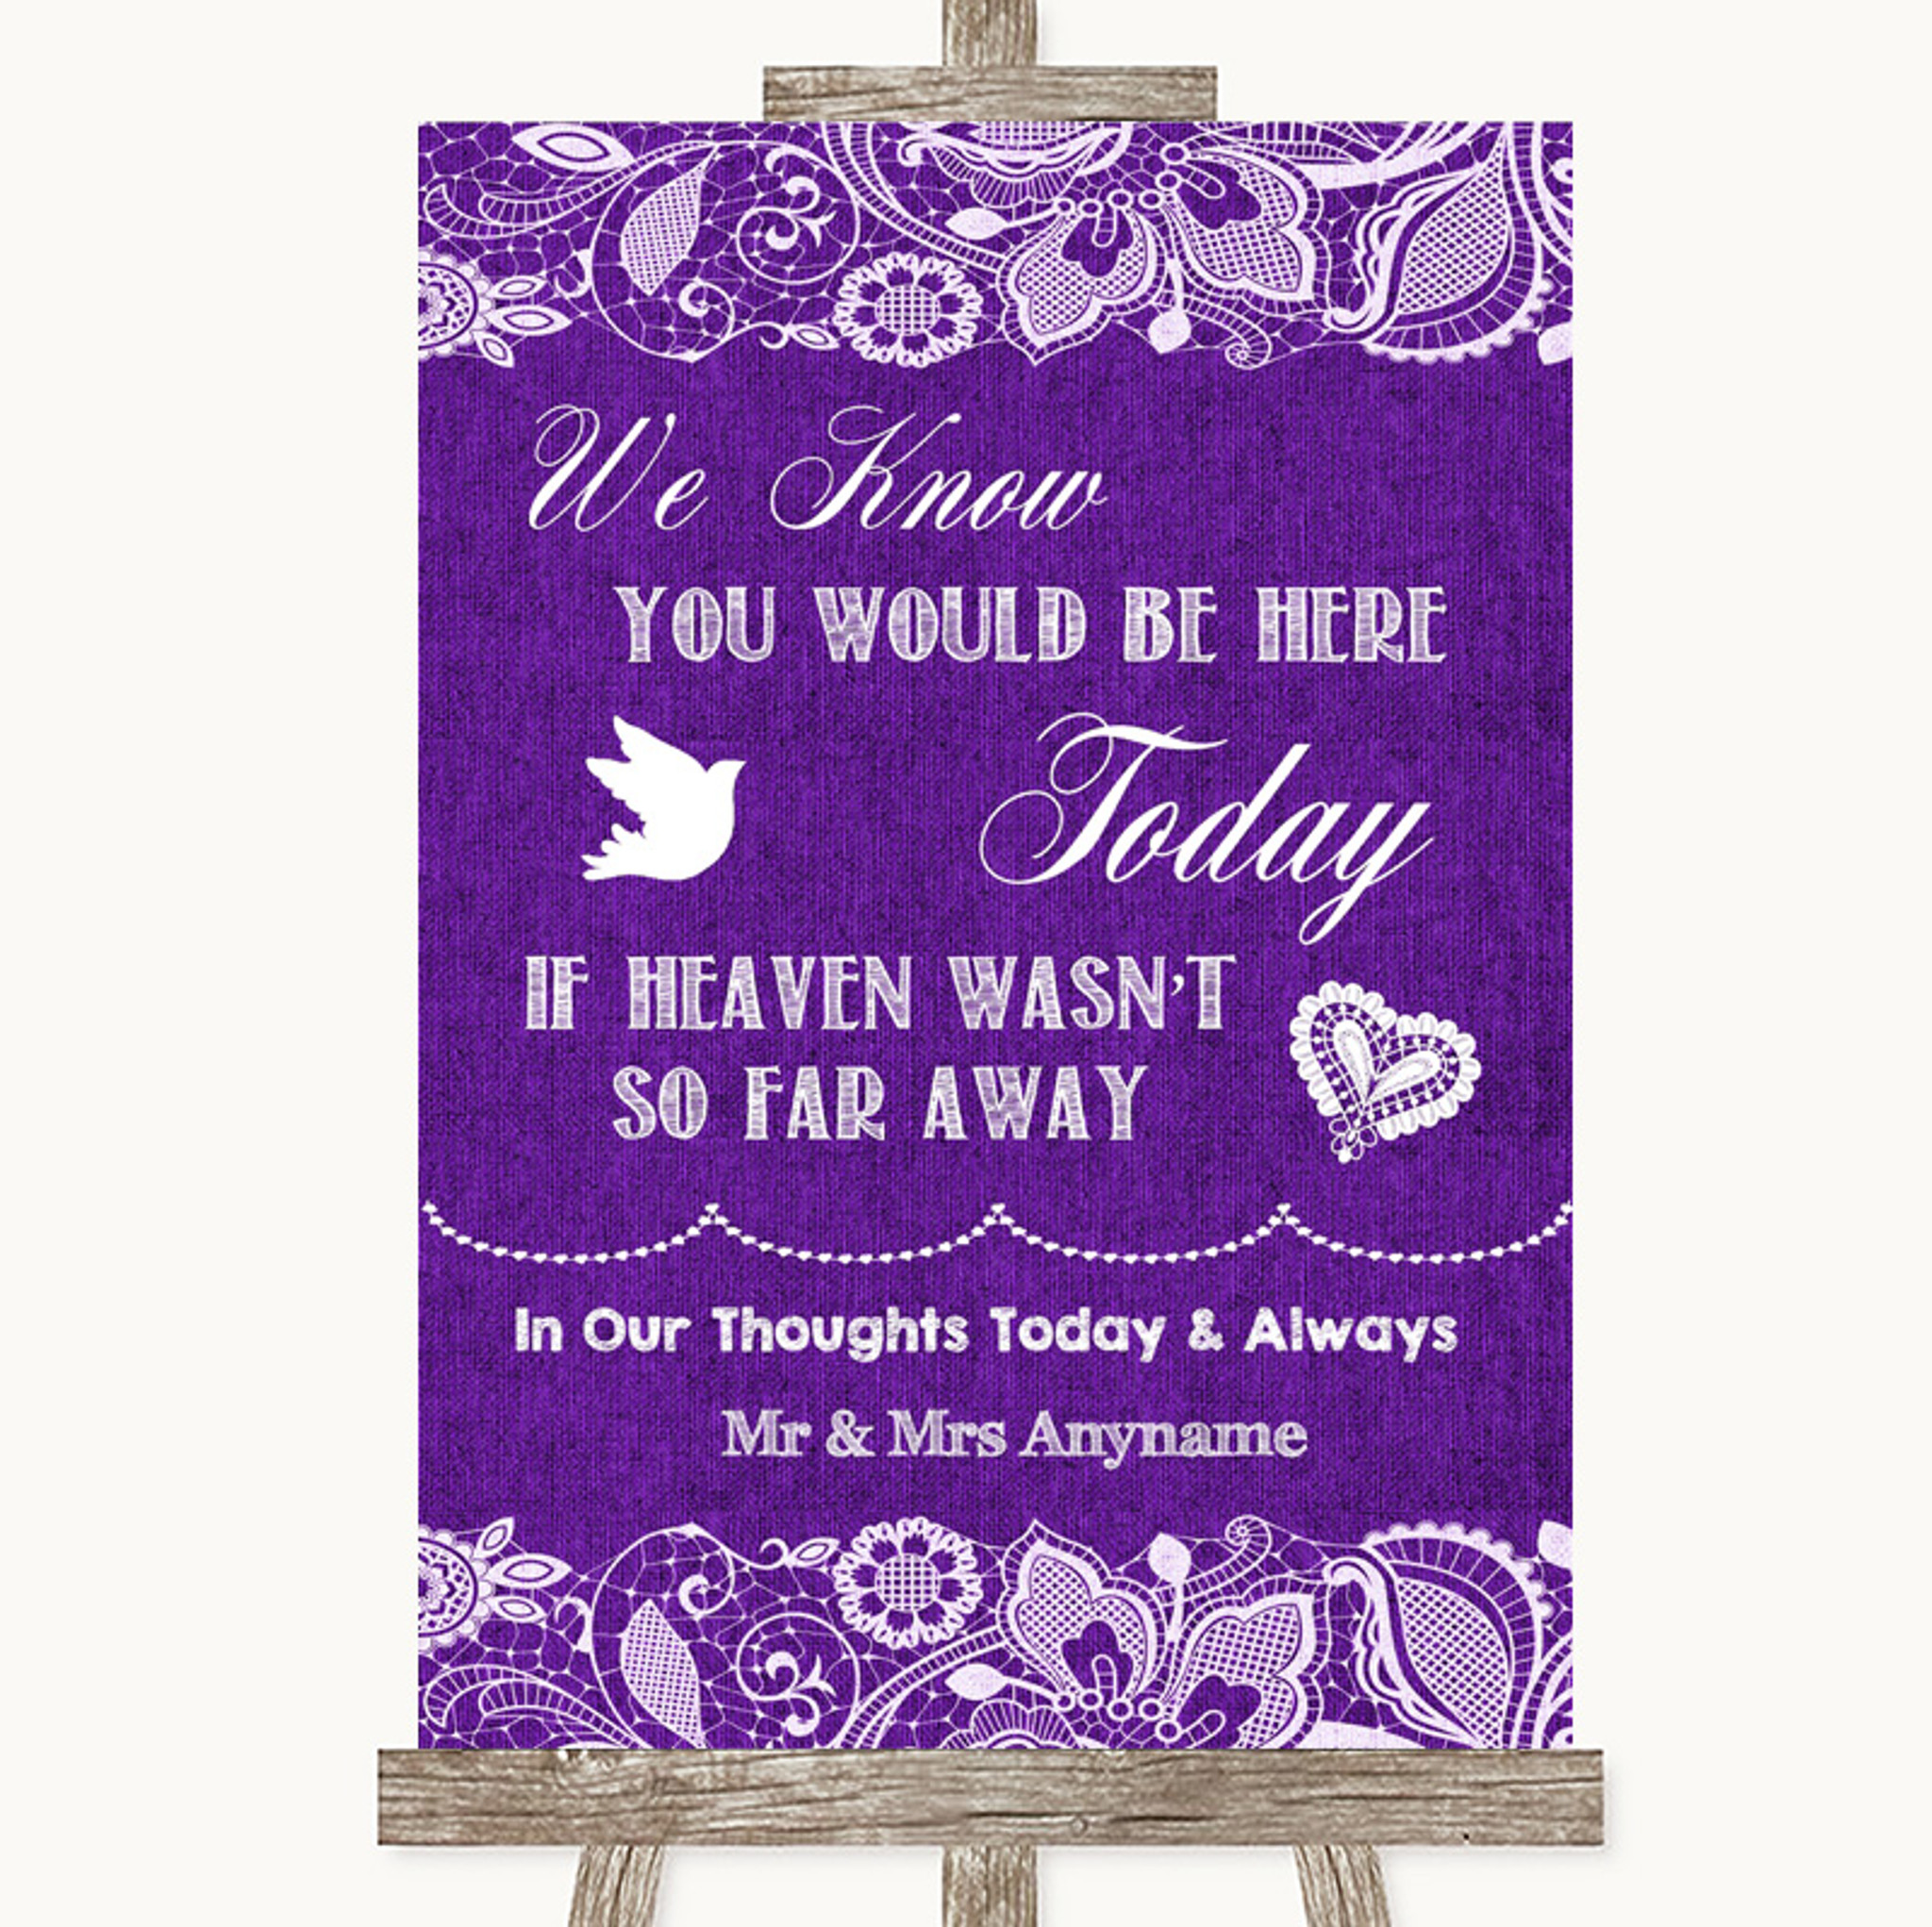 Lilac Burlap /& Lace Loved Ones In Heaven Personalised Wedding Sign